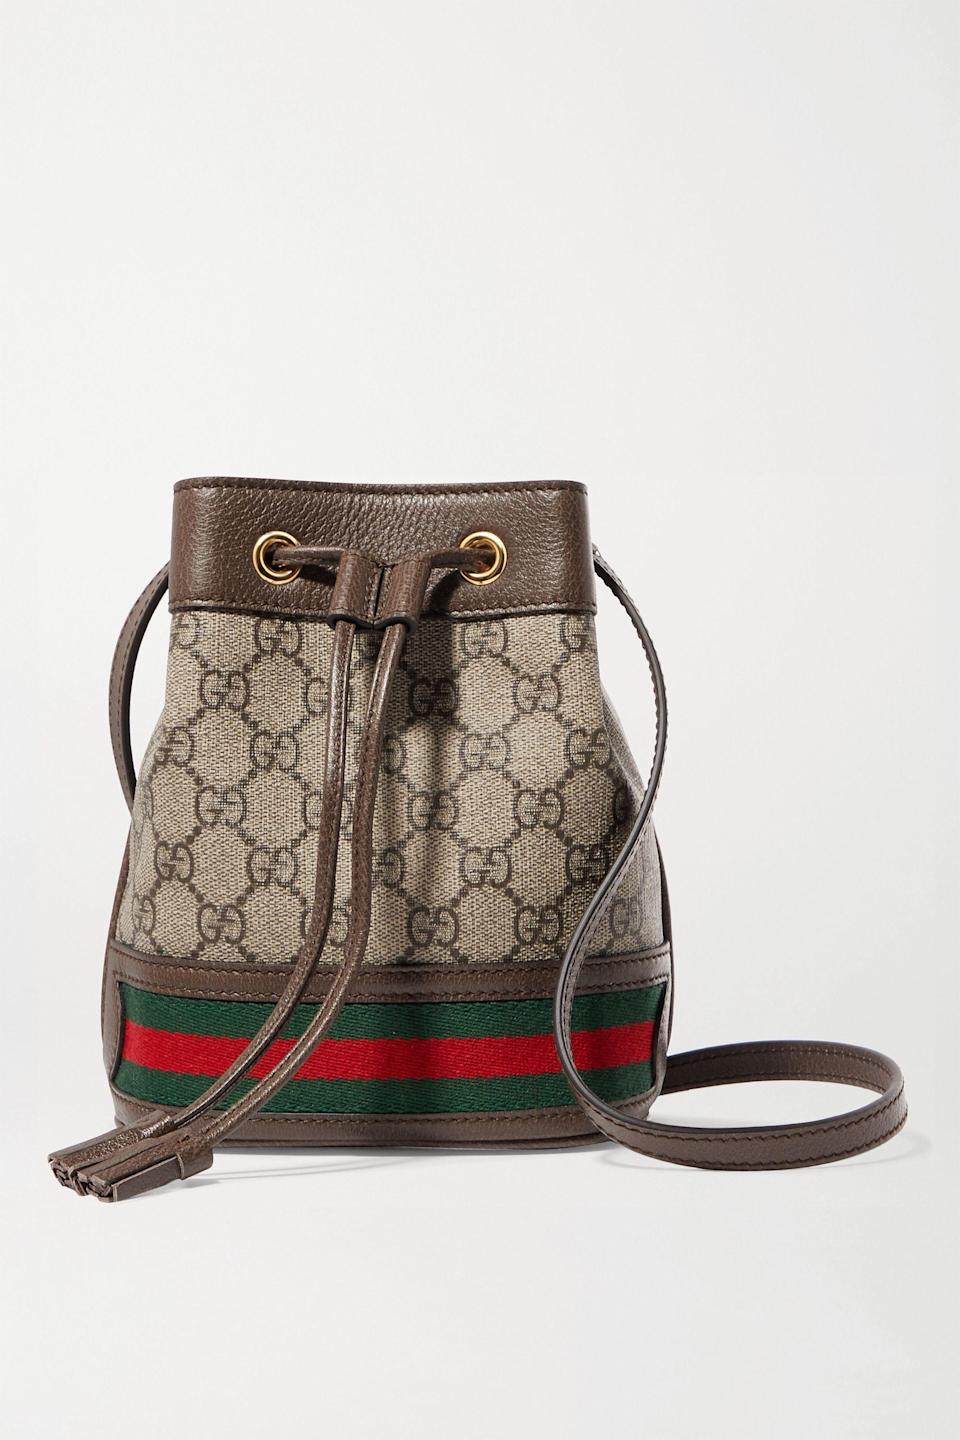 "<p><strong>Gucci</strong></p><p>net-a-porter.com</p><p><strong>$1250.00</strong></p><p><a href=""https://go.redirectingat.com?id=74968X1596630&url=https%3A%2F%2Fwww.net-a-porter.com%2Fen-us%2Fshop%2Fproduct%2Fgucci%2Fophidia-mini-textured-leather-trimmed-printed-coated-canvas-bucket-bag%2F1294492&sref=https%3A%2F%2Fwww.harpersbazaar.com%2Ffashion%2Ftrends%2Fg4447%2Fluxury-gifts-for-women%2F"" rel=""nofollow noopener"" target=""_blank"" data-ylk=""slk:Shop Now"" class=""link rapid-noclick-resp"">Shop Now</a></p><p>A classic.</p>"